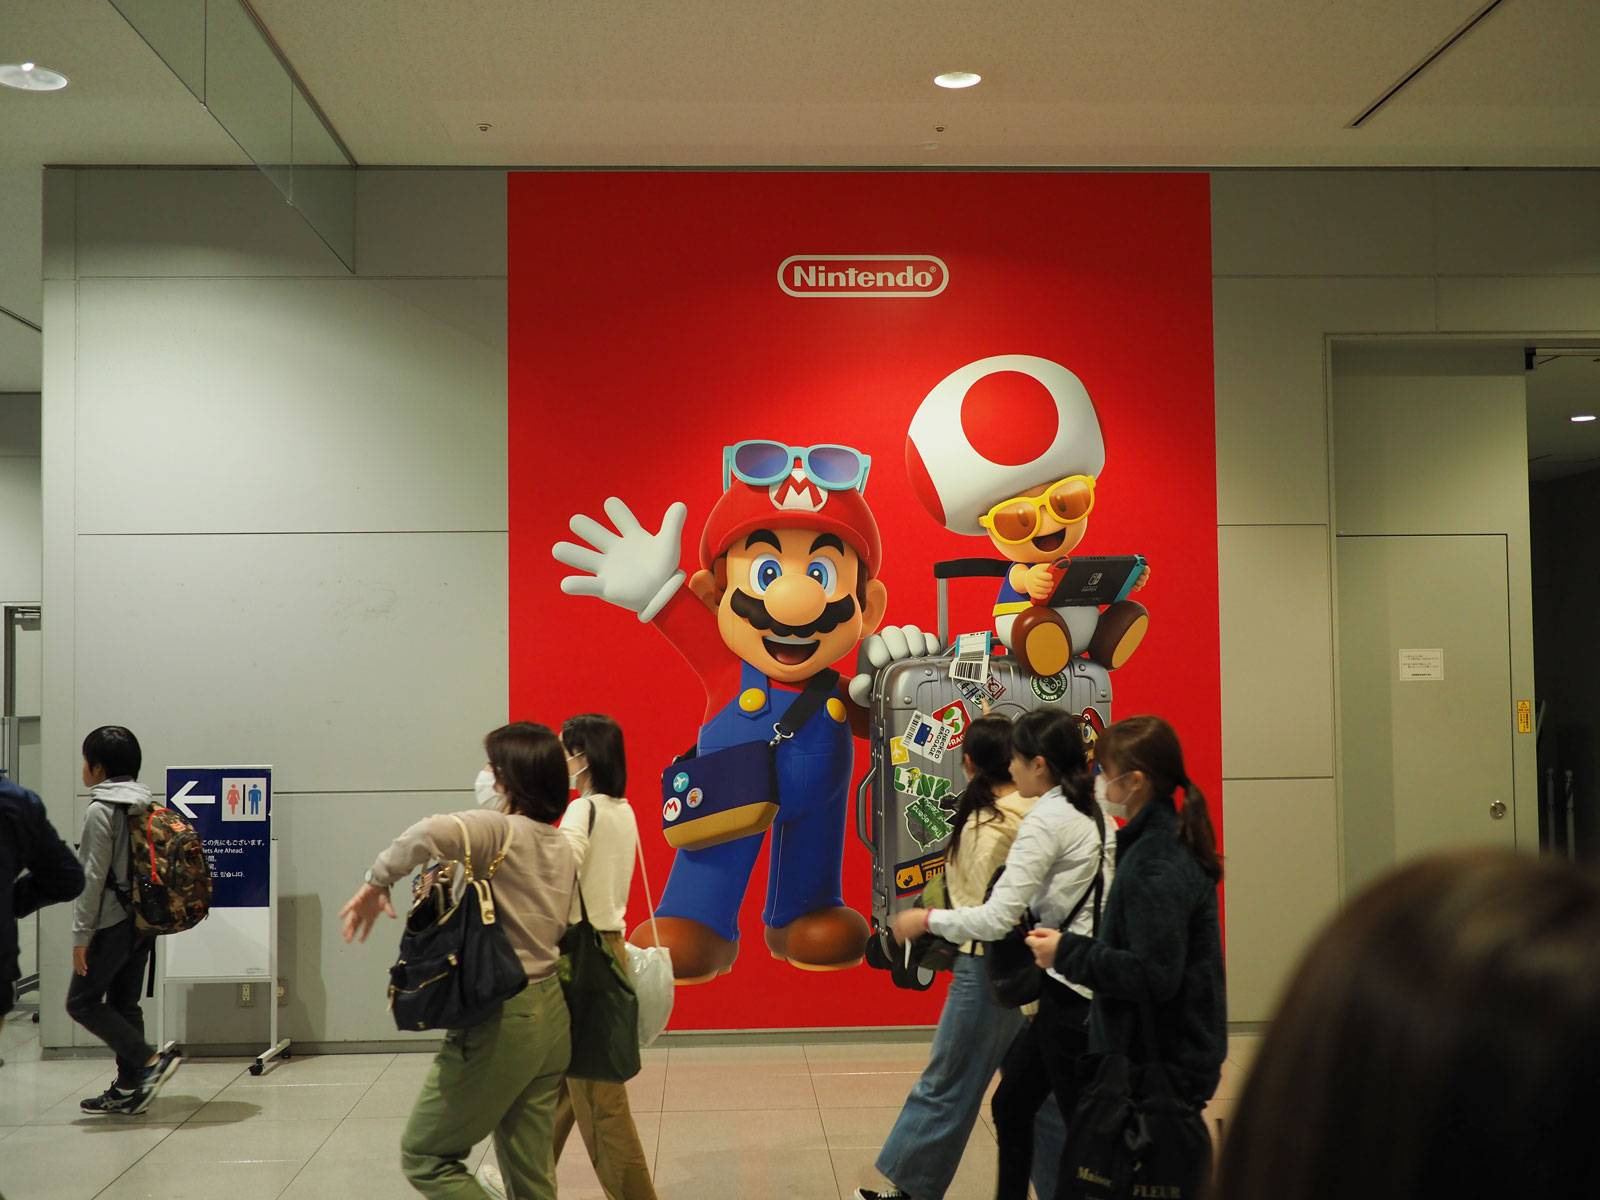 Nintendo and Mario welcoming us to Japan